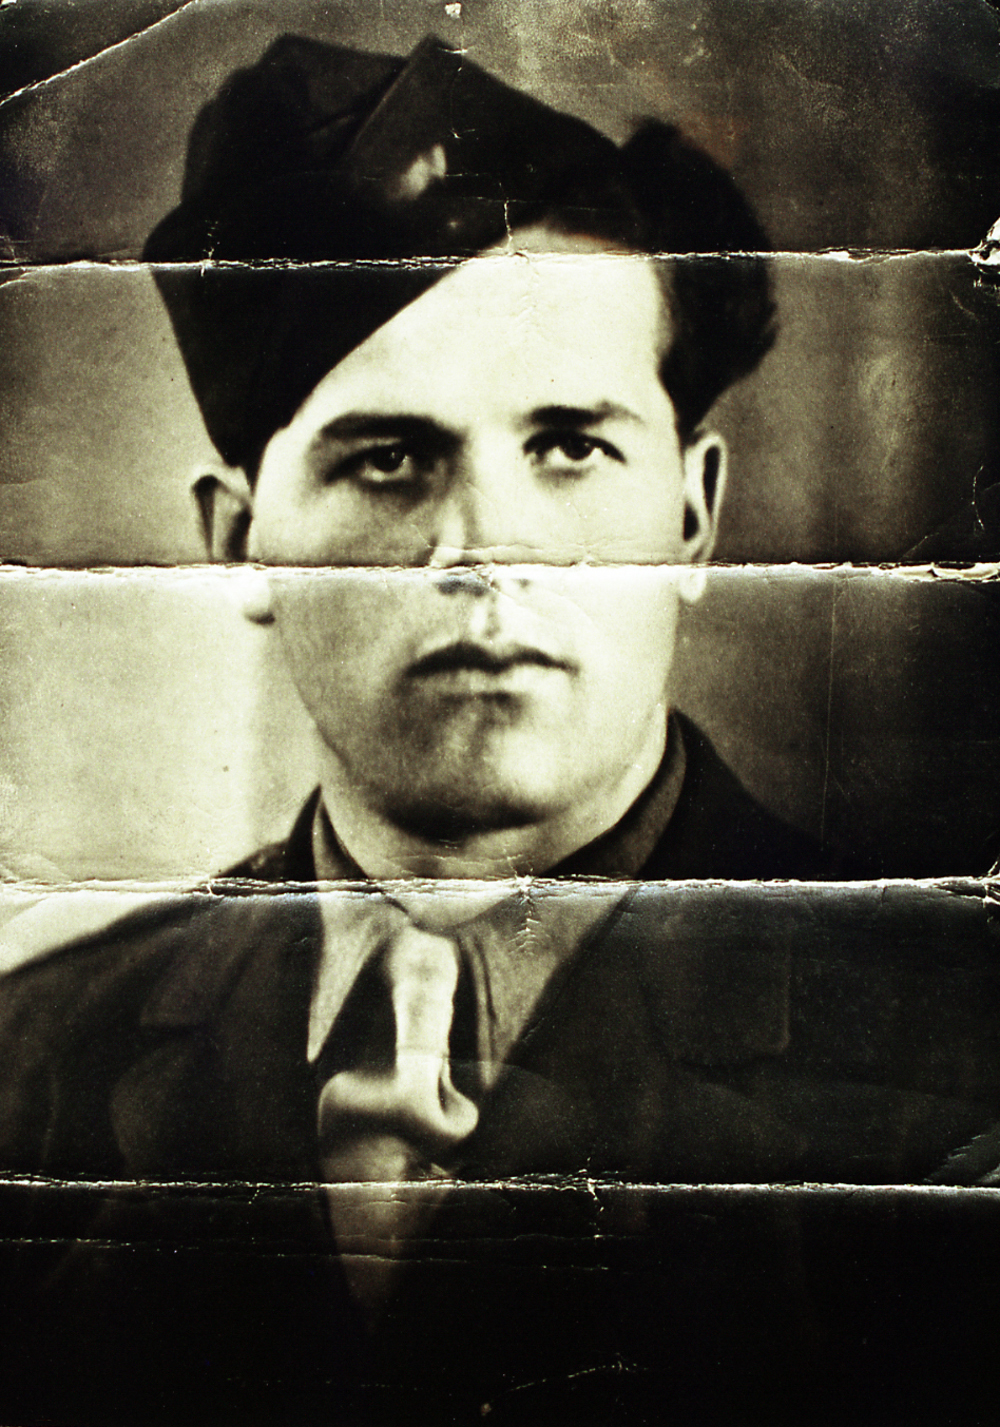 Alex Tomcjak (Daniel's late grandfather) from LIVING WITH DEMENTIA